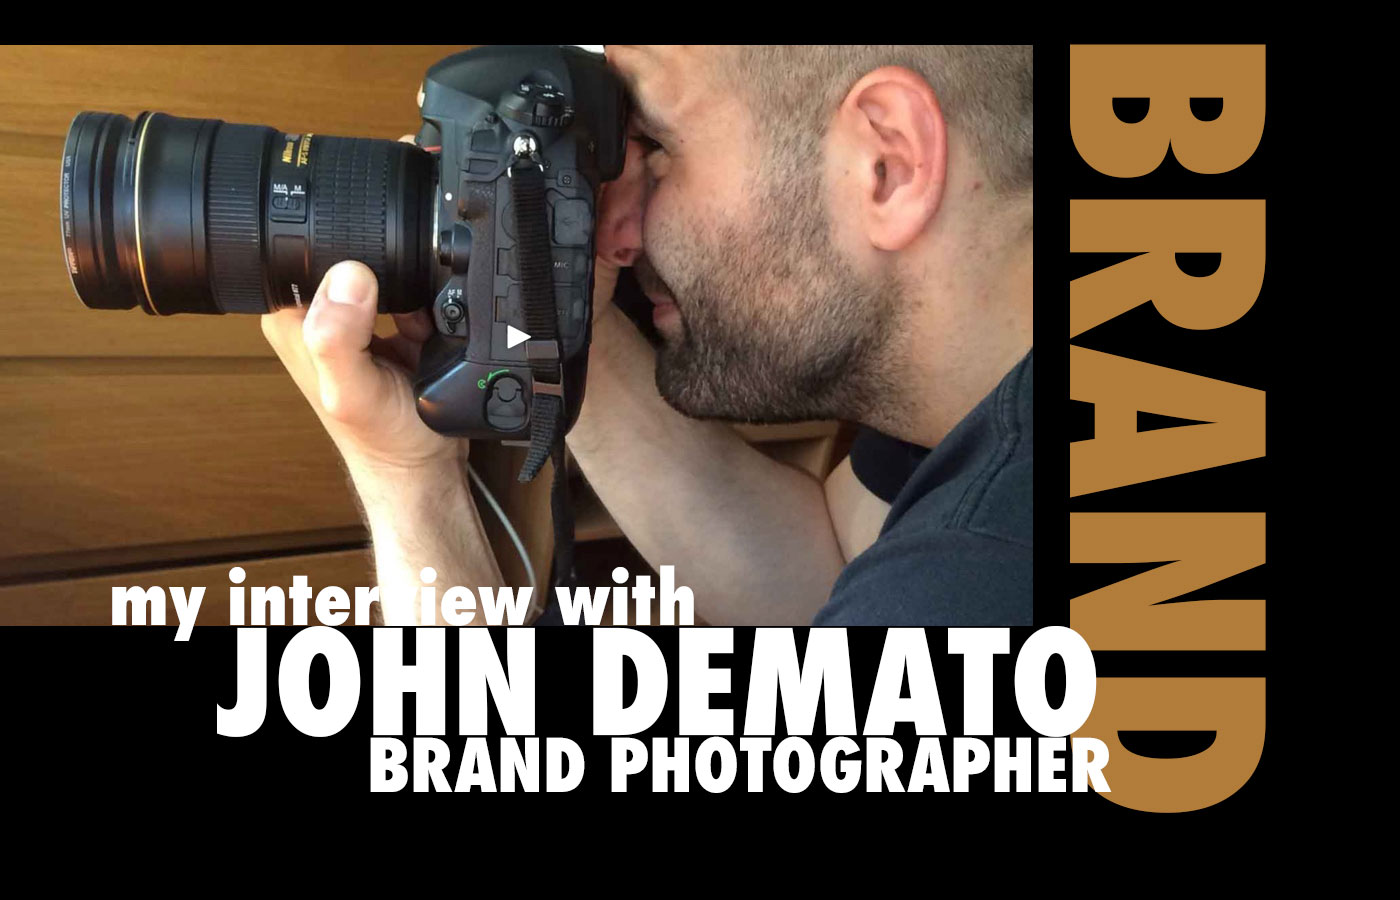 NYC branded lifestyle portrait John DeMato with Nikon in hand